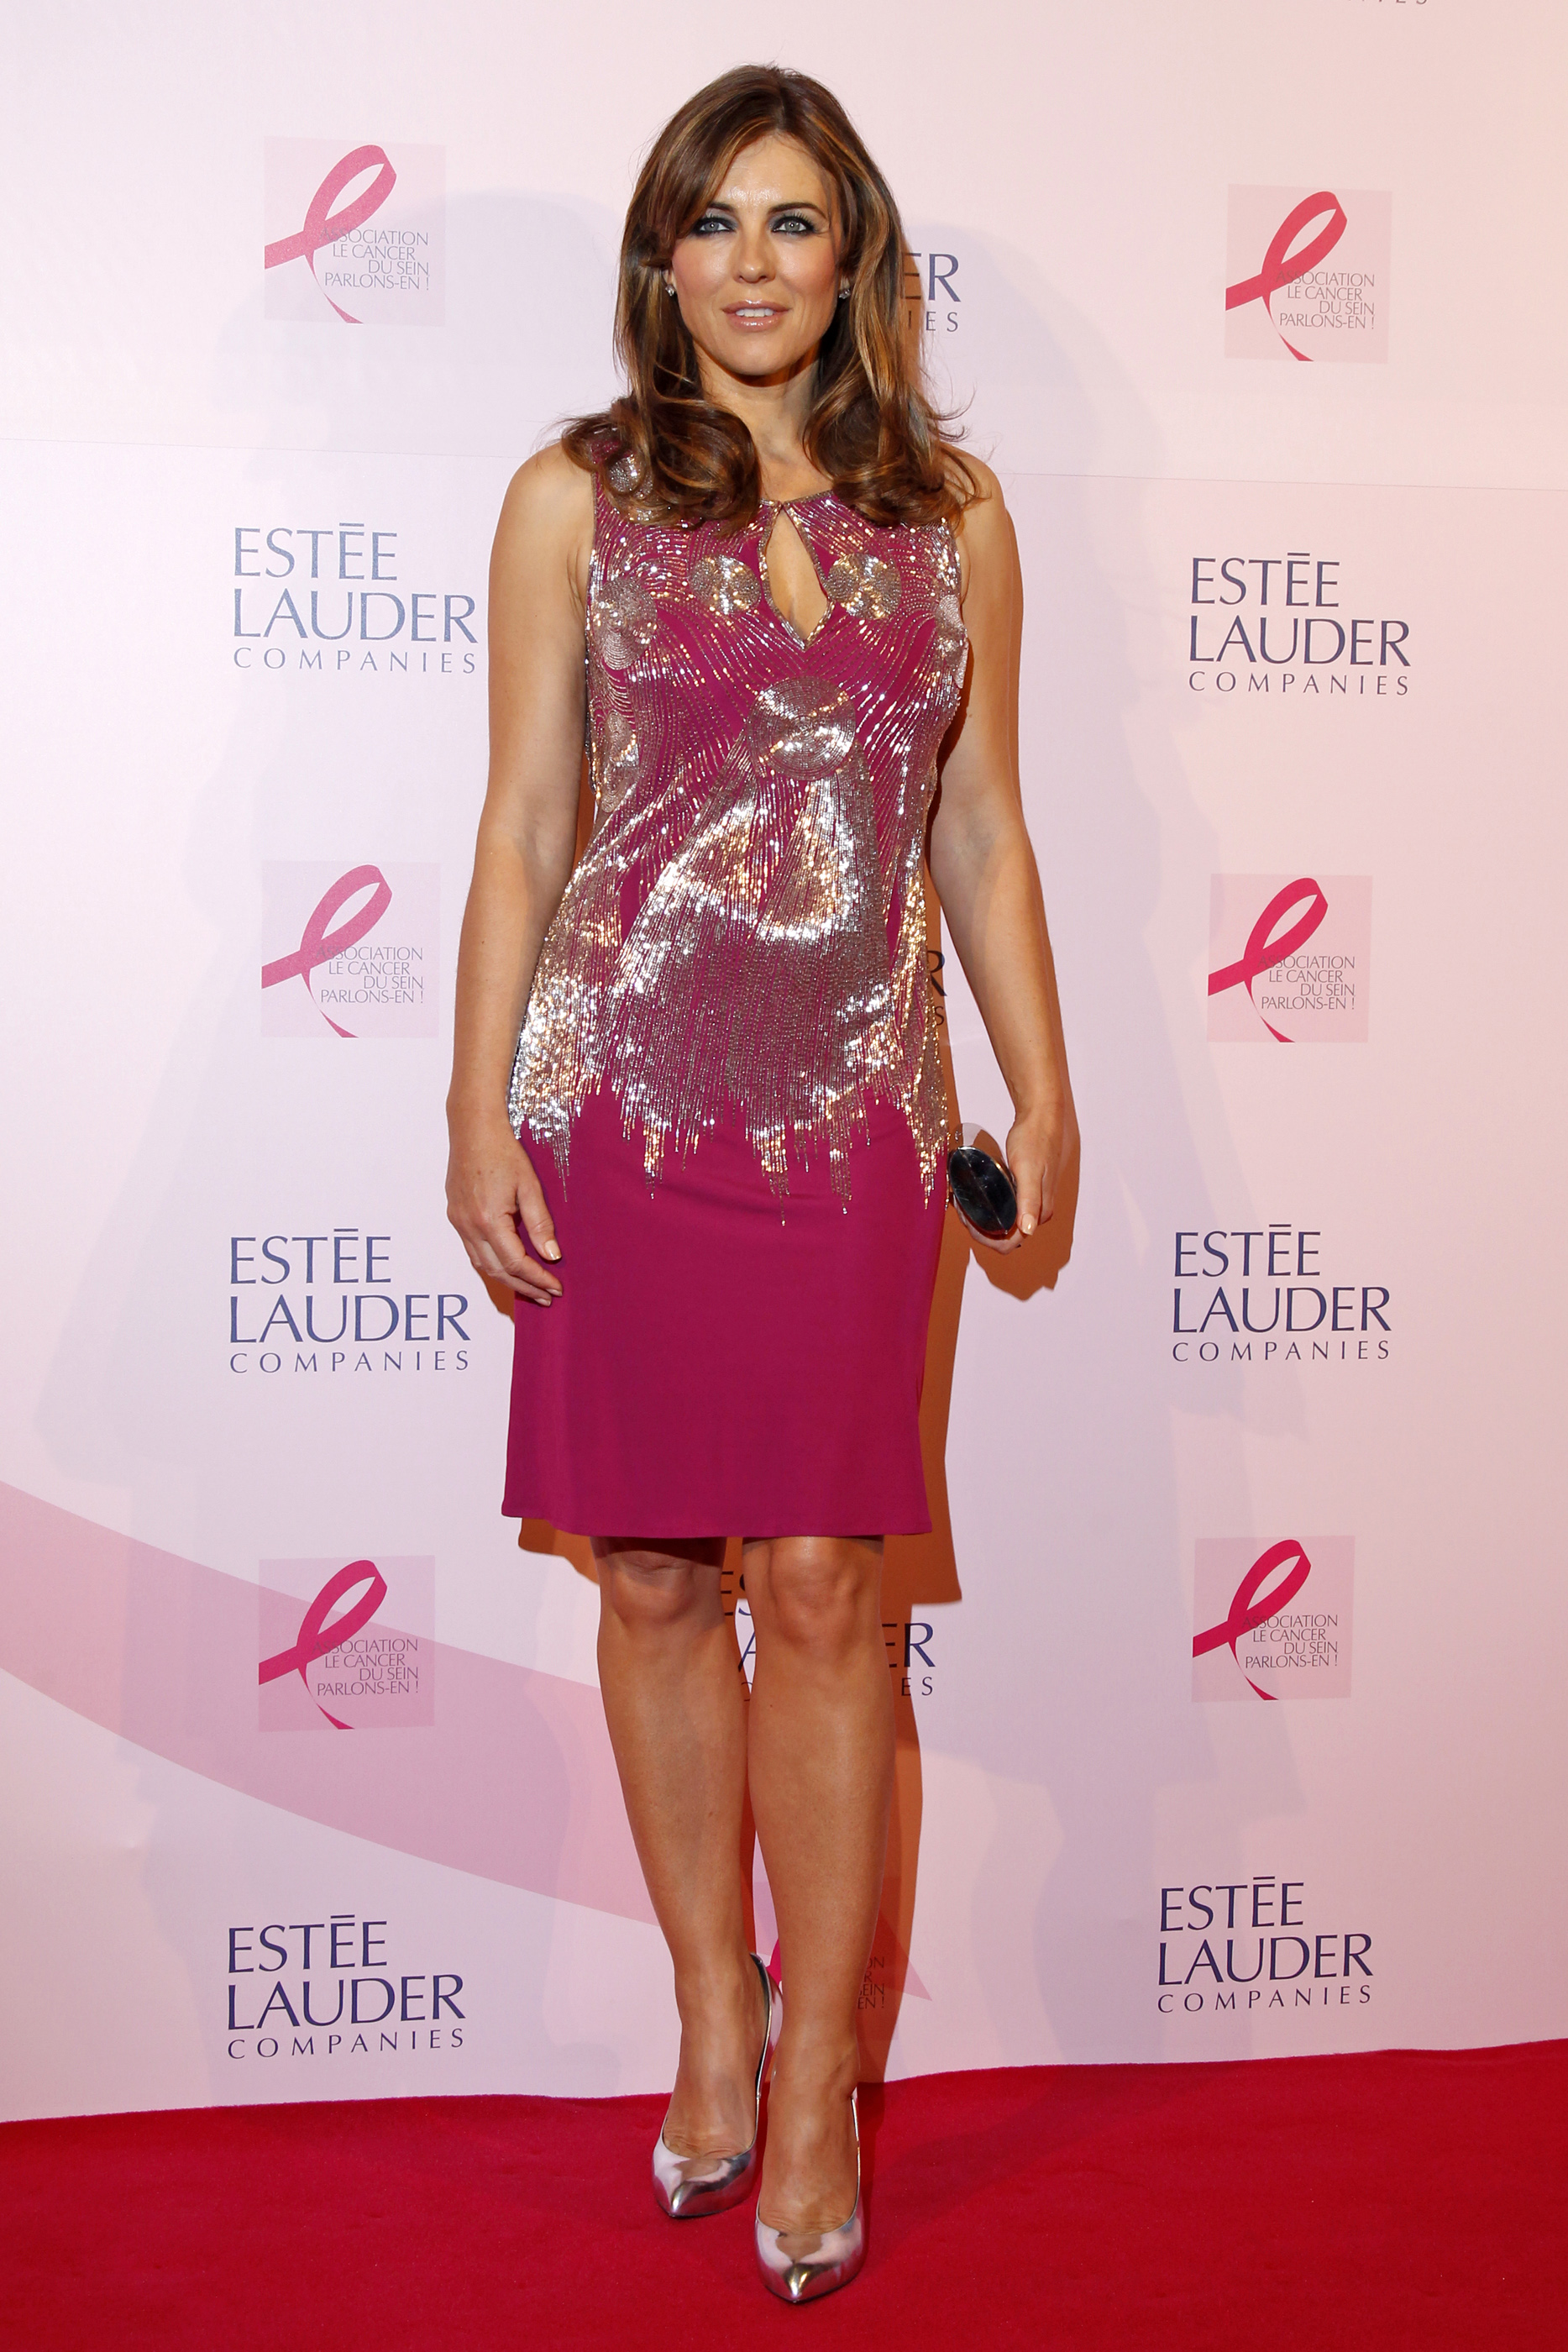 Actress and model Elizabeth Hurley attends a photocall during the 20th anniversary of the Estee Lauder companies' Breast Cancer Awareness campaign in Paris October 10, 2012.  REUTERS/Benoit Tessier (FRANCE - Tags: HEALTH ENTERTAINMENT)